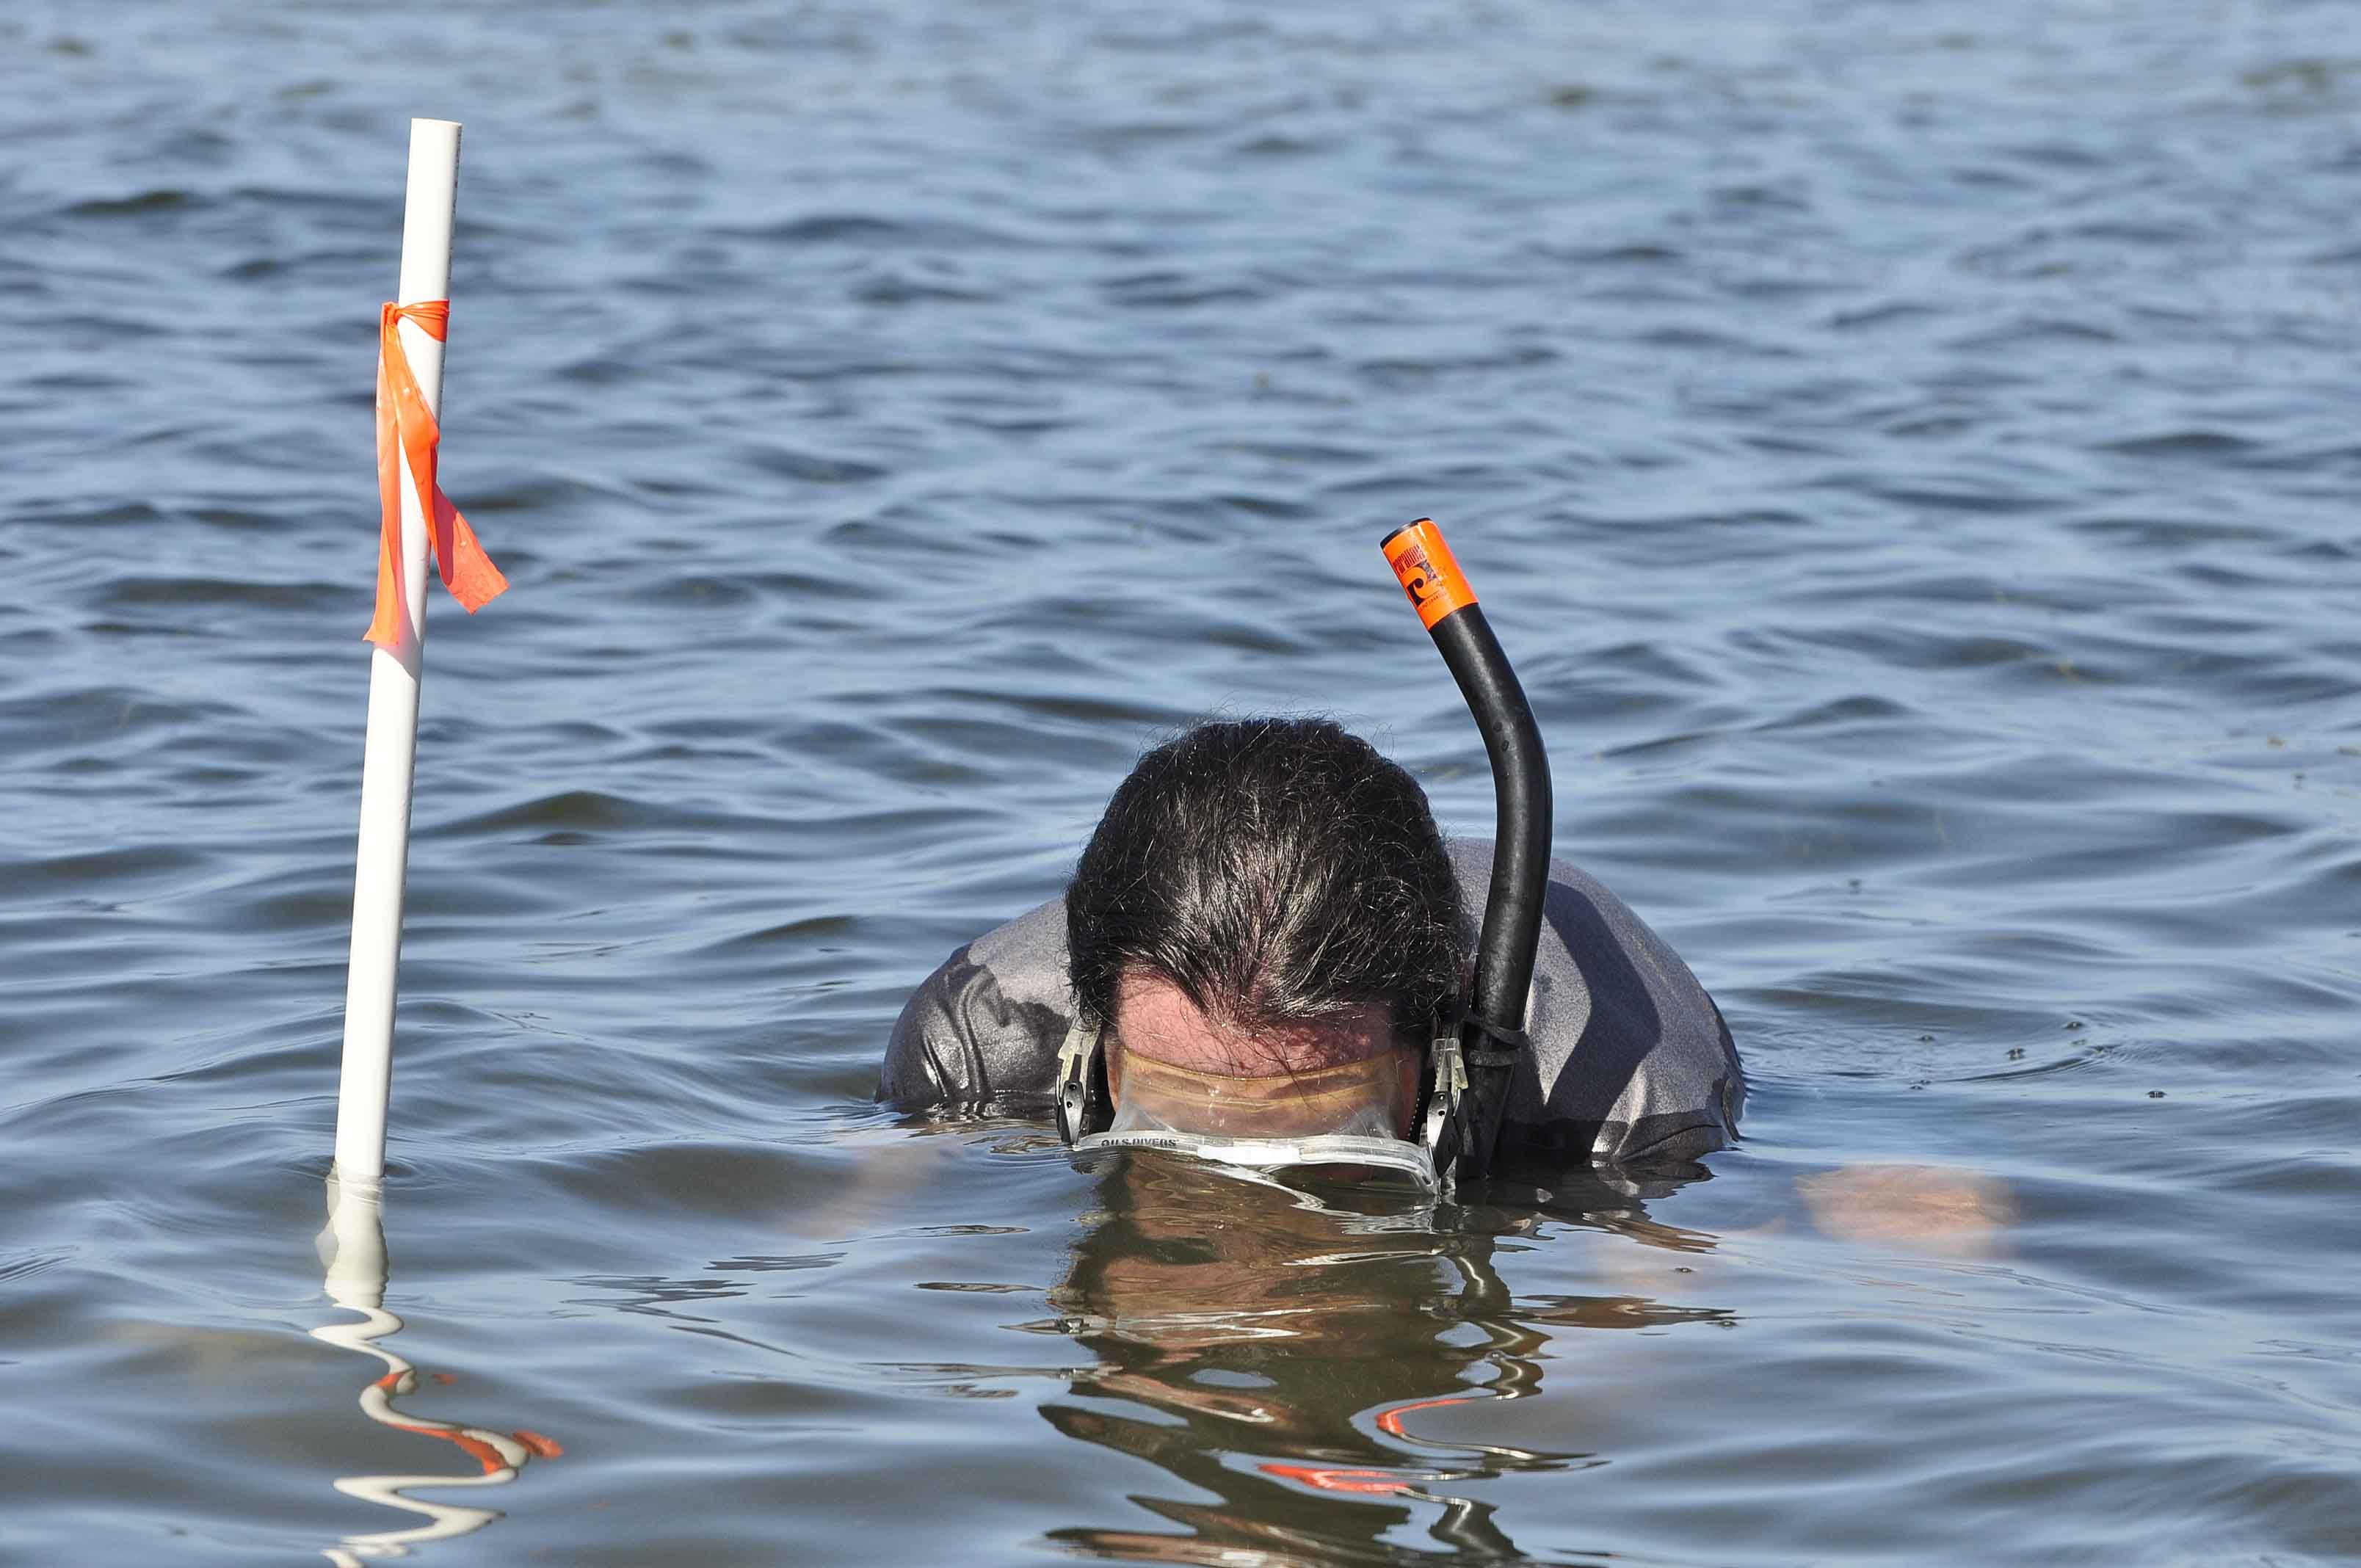 Hillsborough County S John Mcgee Getting Immersed In The